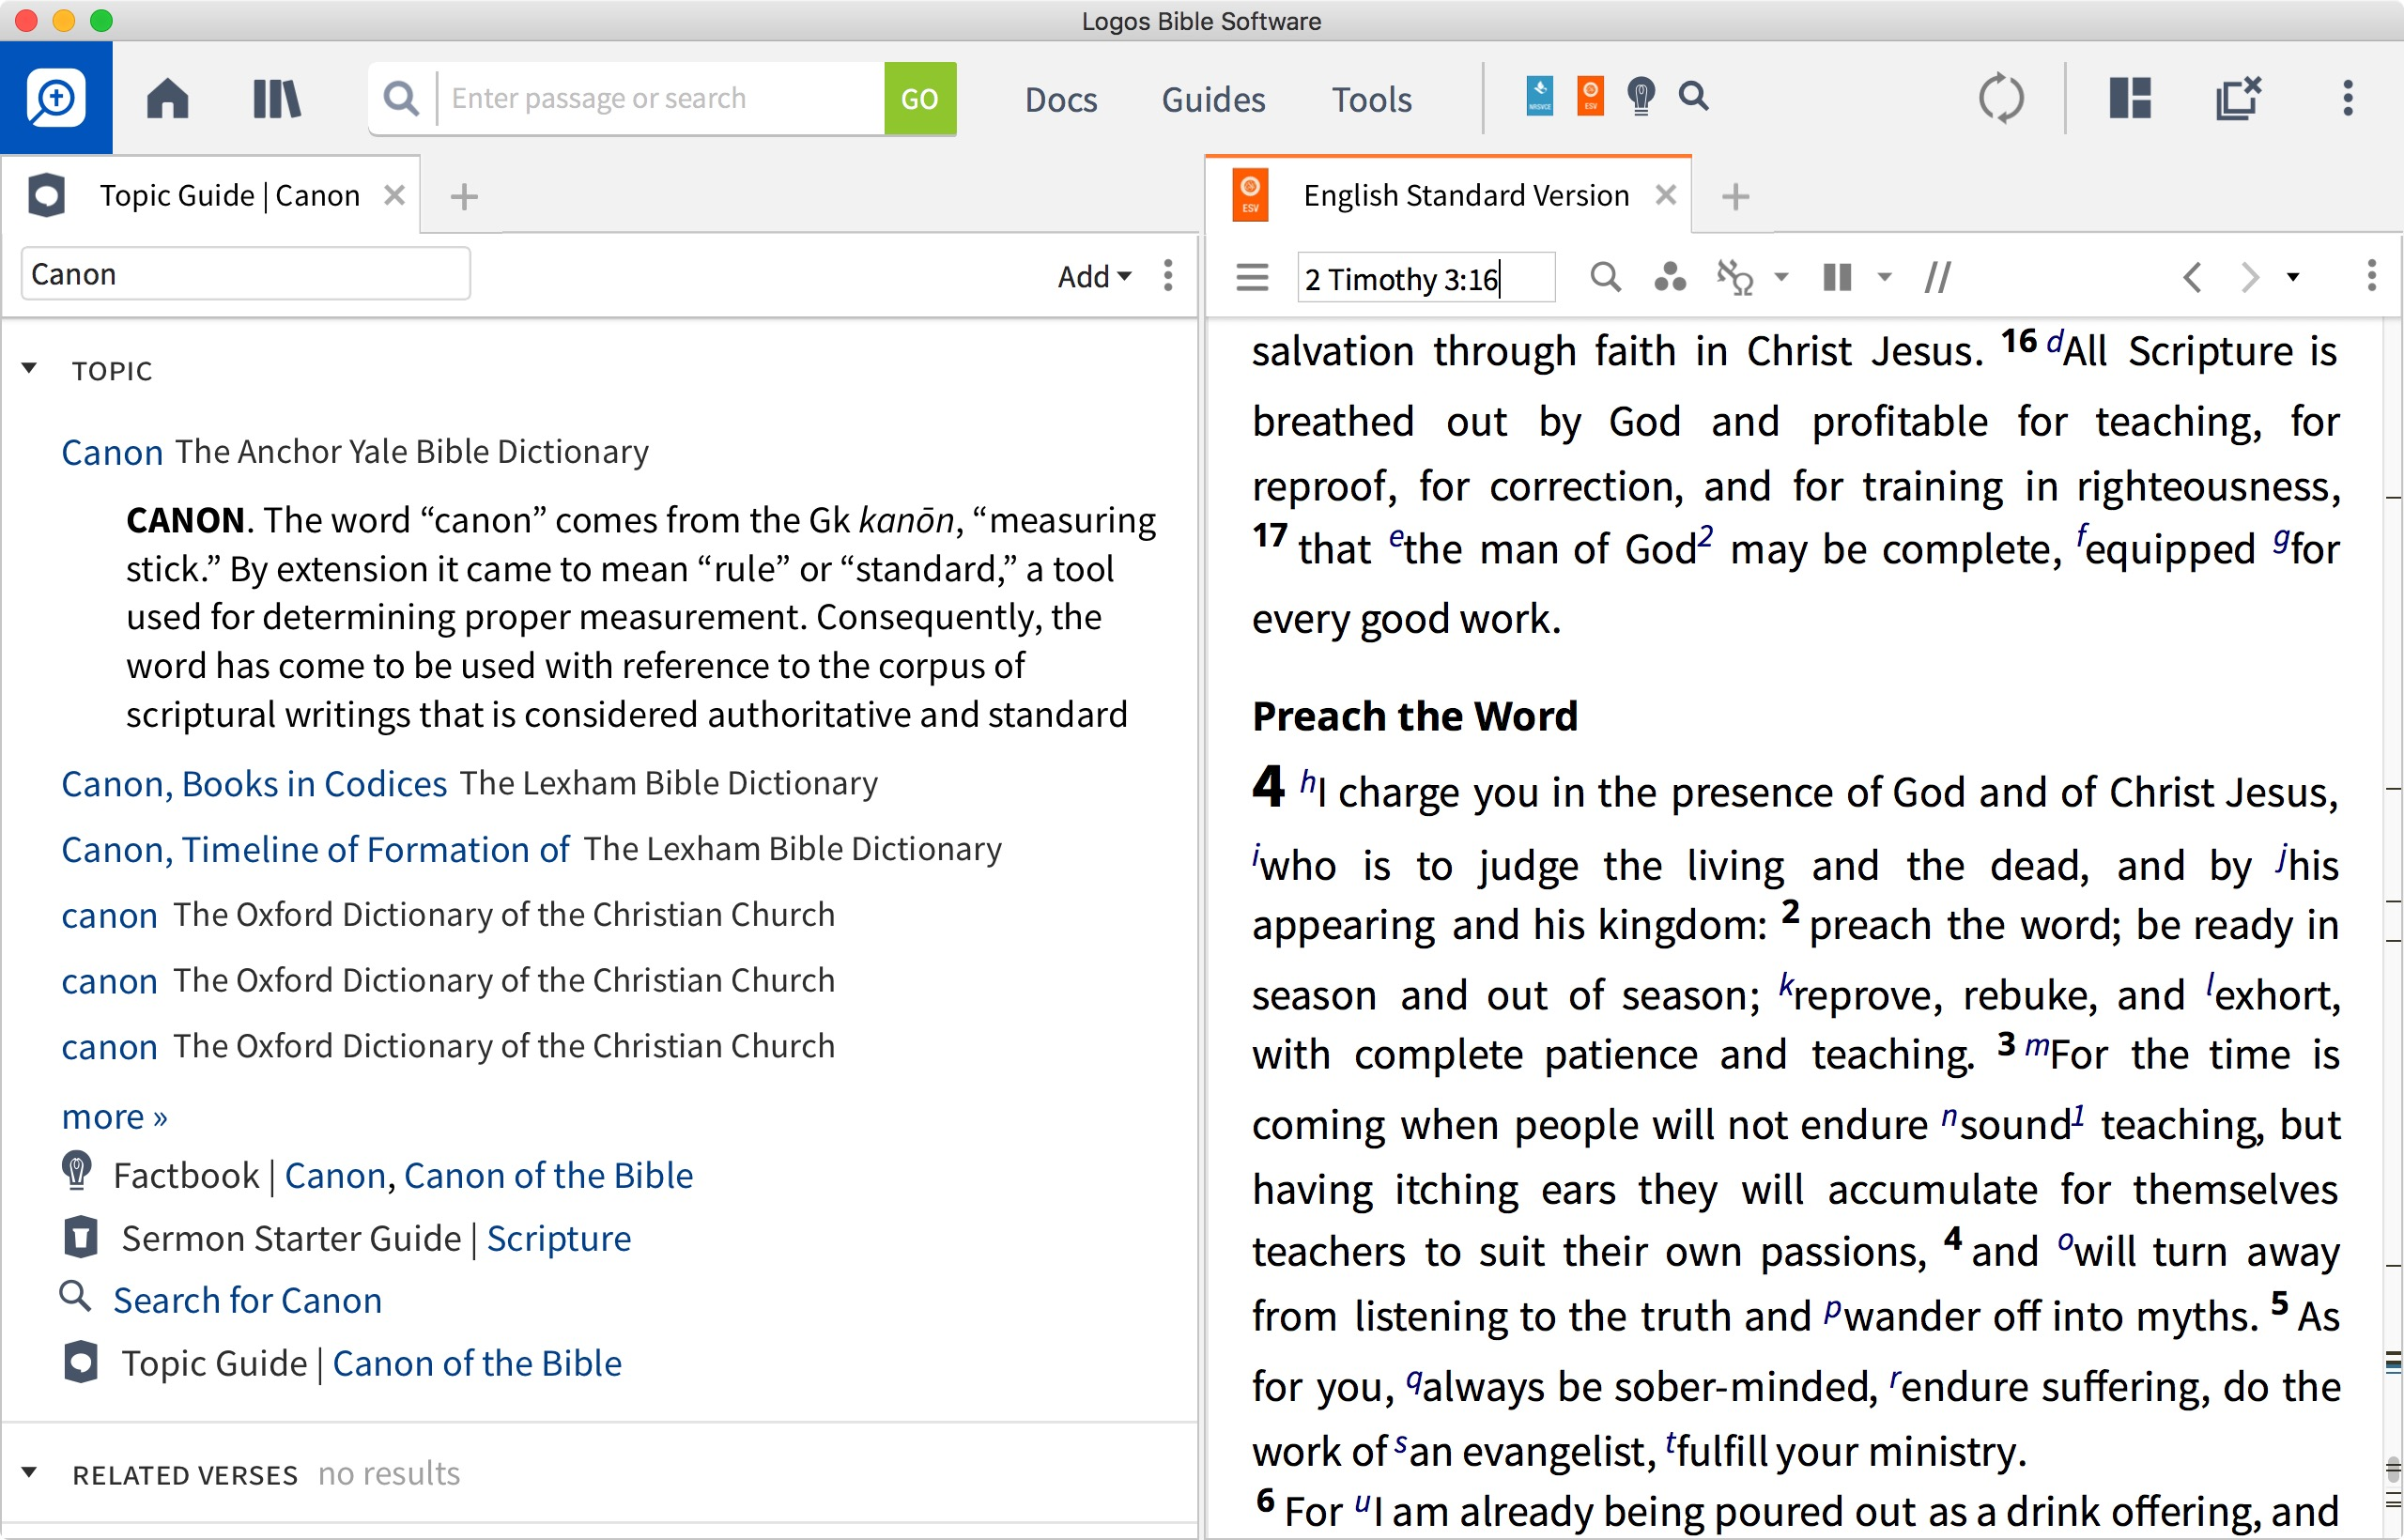 Features | Logos Bible Software